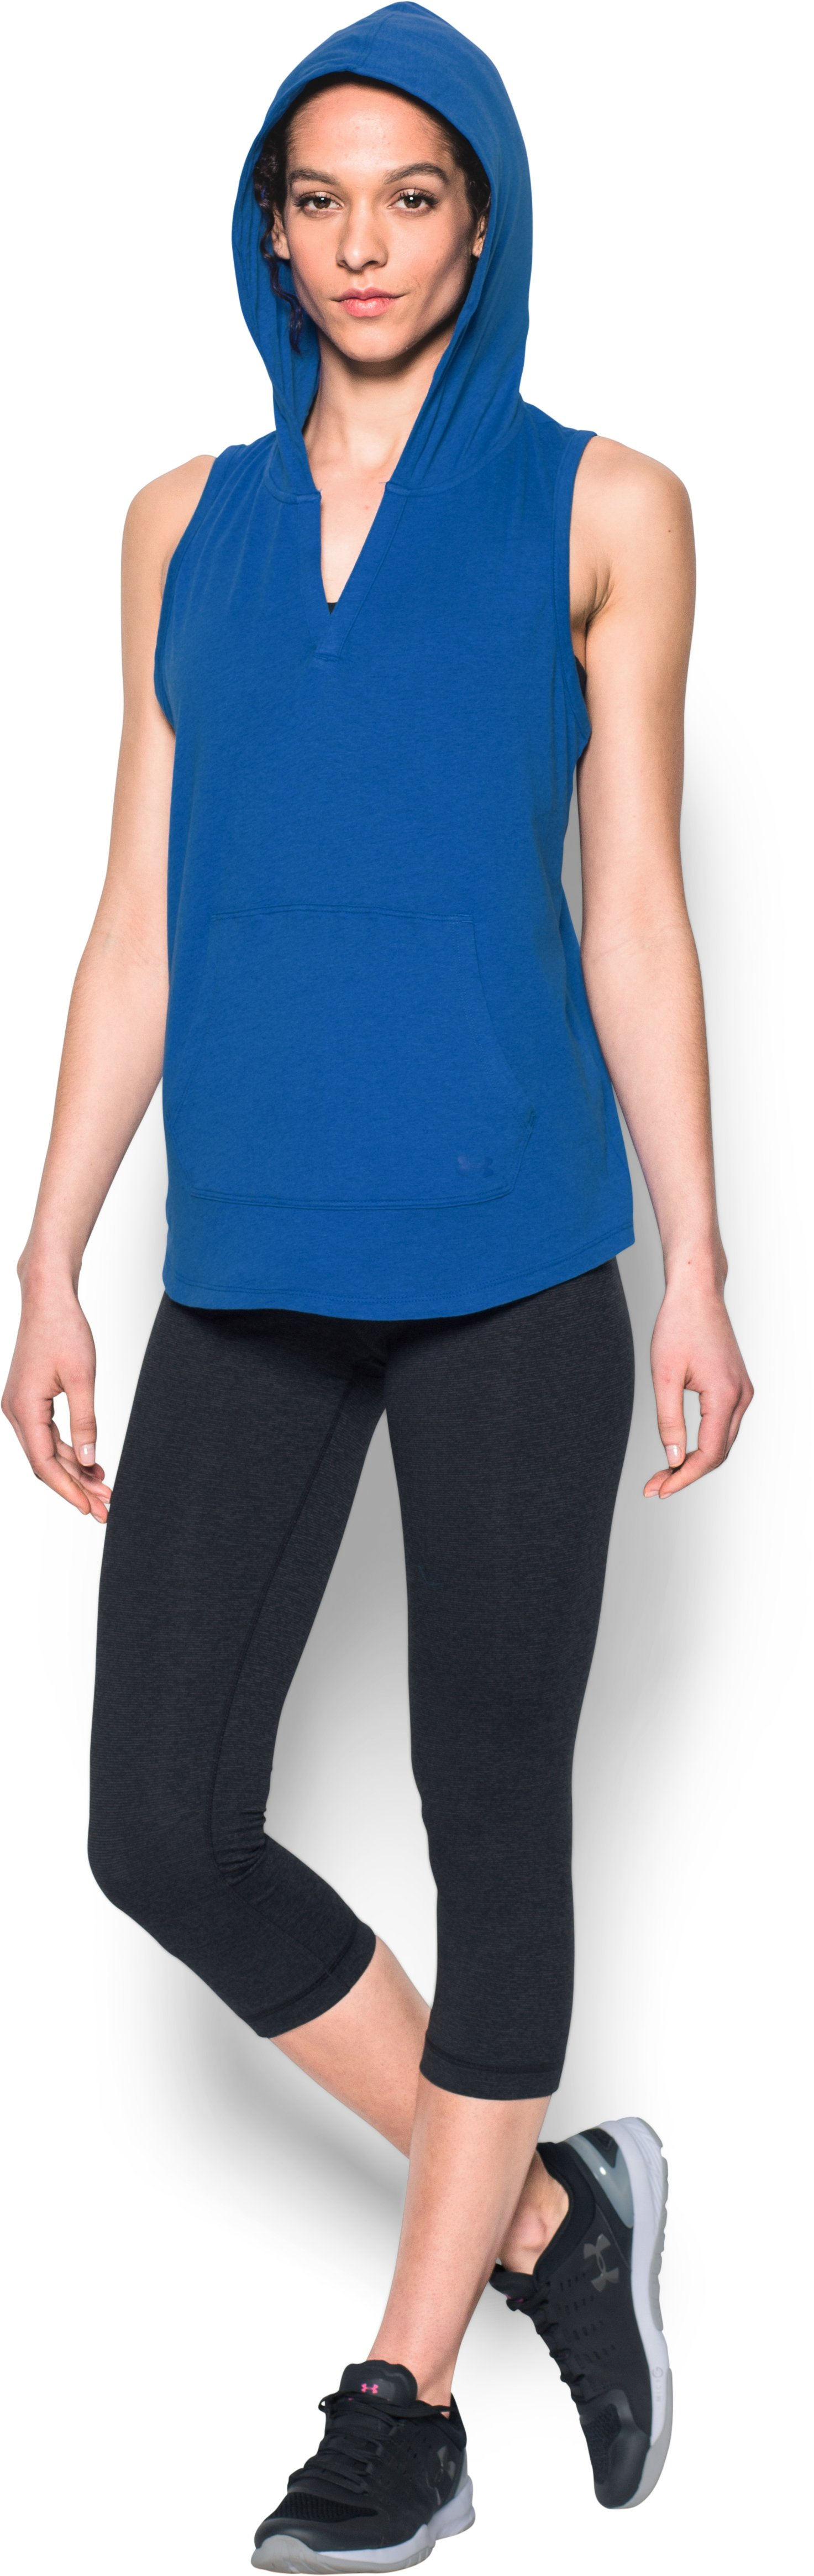 Women's UA Cotton Modal Sleeveless Hoodie, ULTRA BLUE, undefined